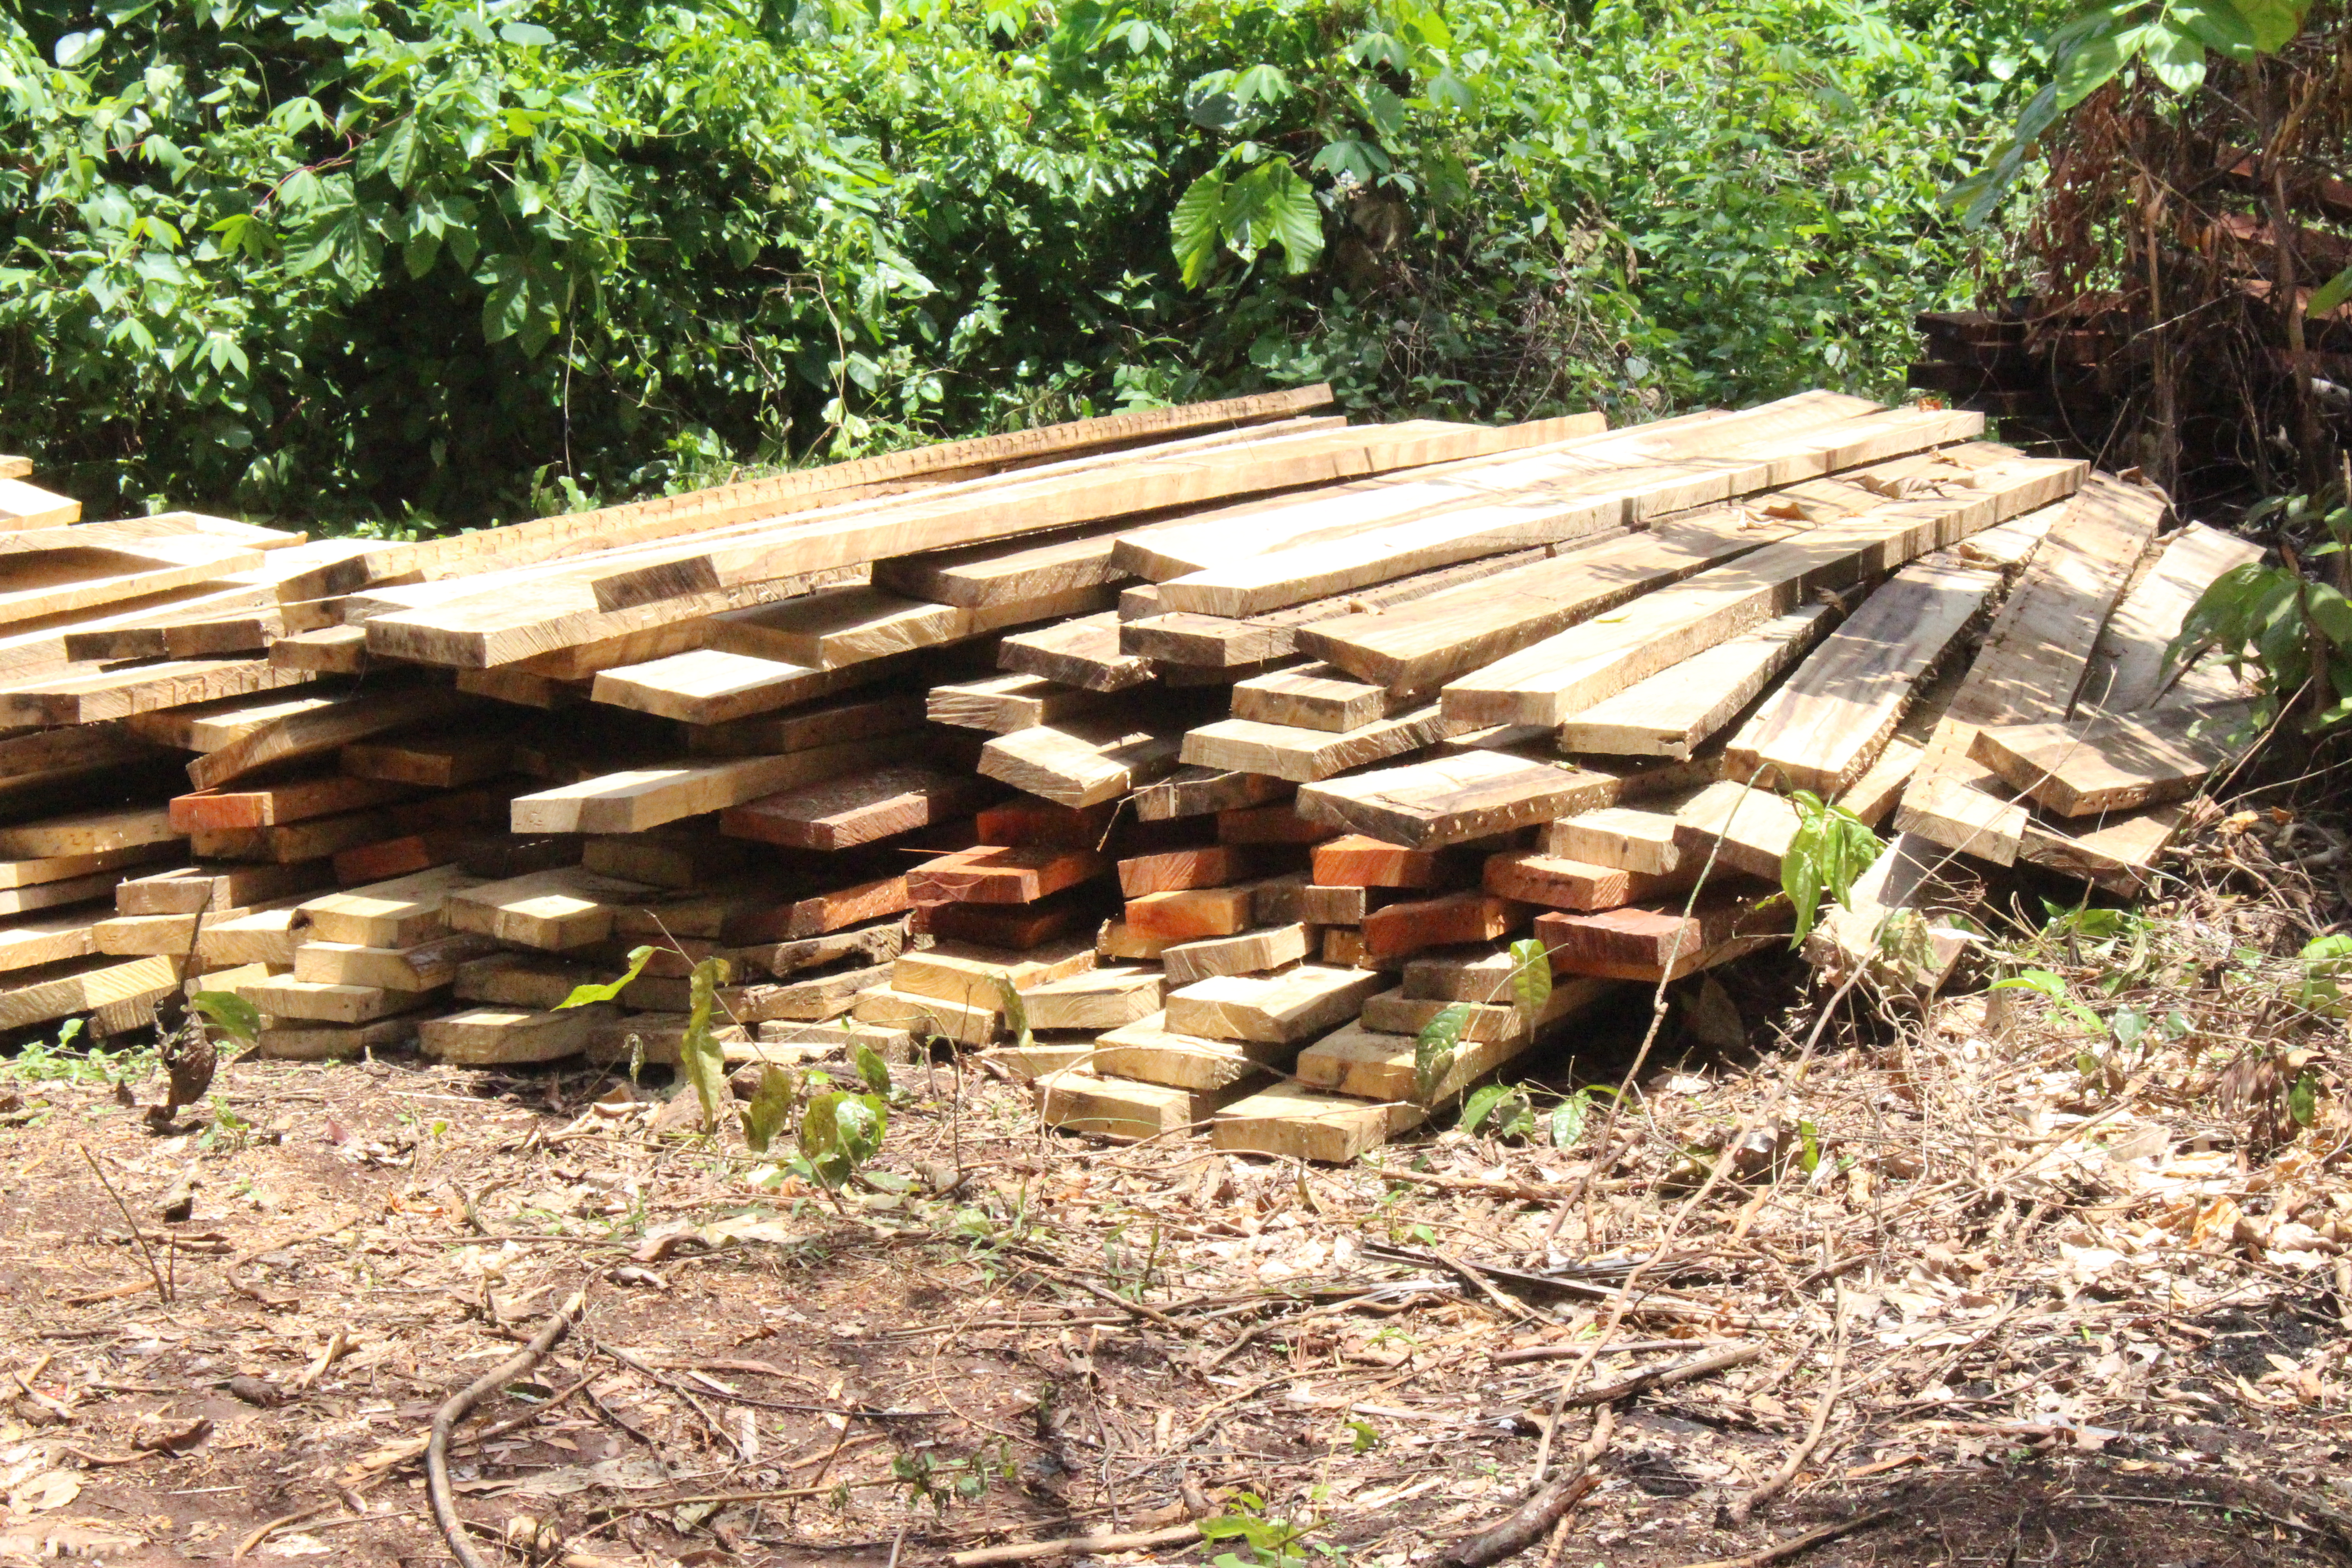 Illegal sawn lumber lying in the forest.  Afrormosia boards are in the middle of the stack.